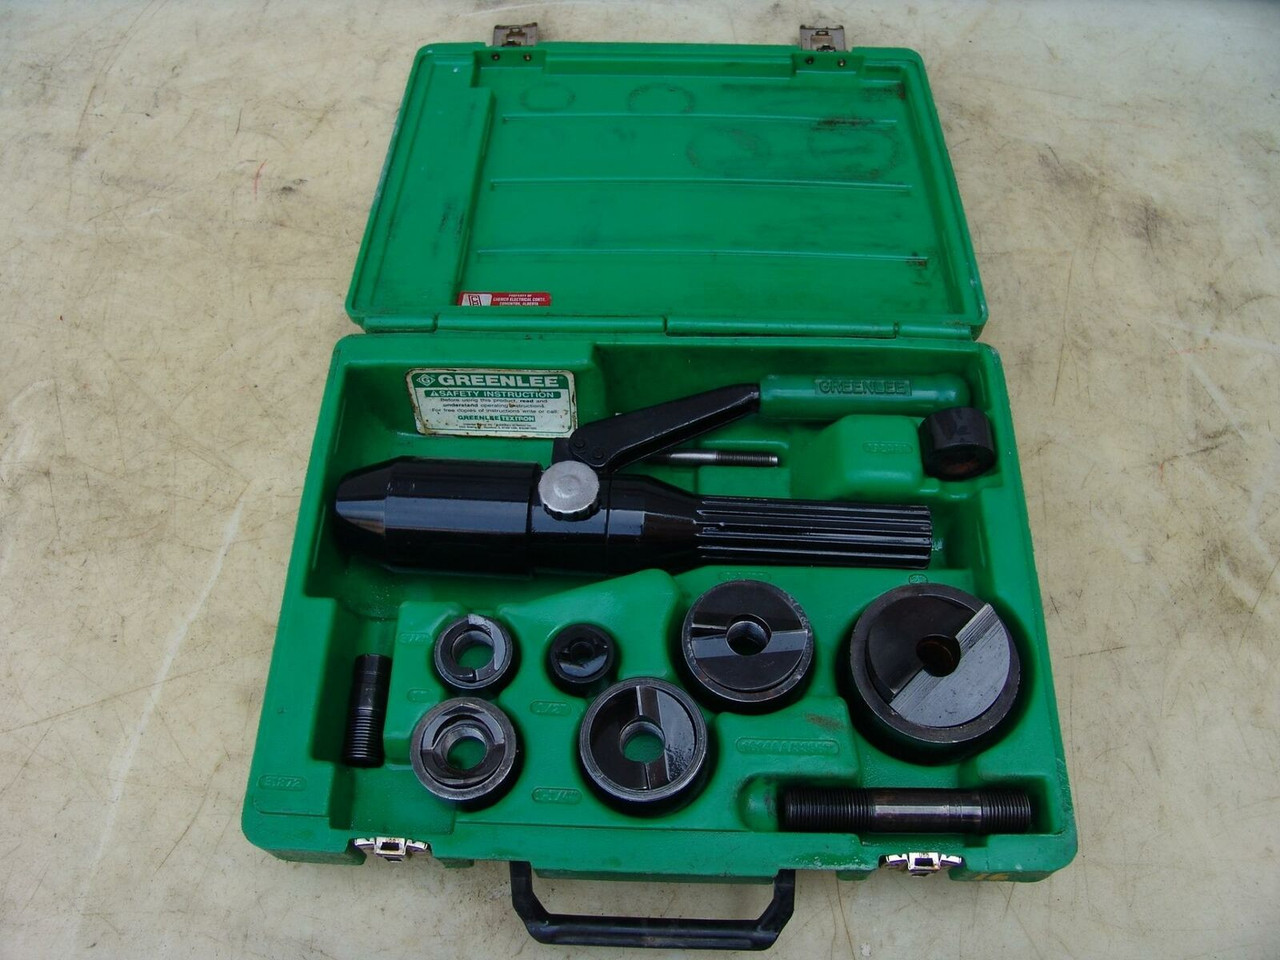 GREENLEE 7804SB QUICK DRAW HYDRAULIC PUNCH DRIVER 1/2 TO 2 INCH WORKS FINE  #16